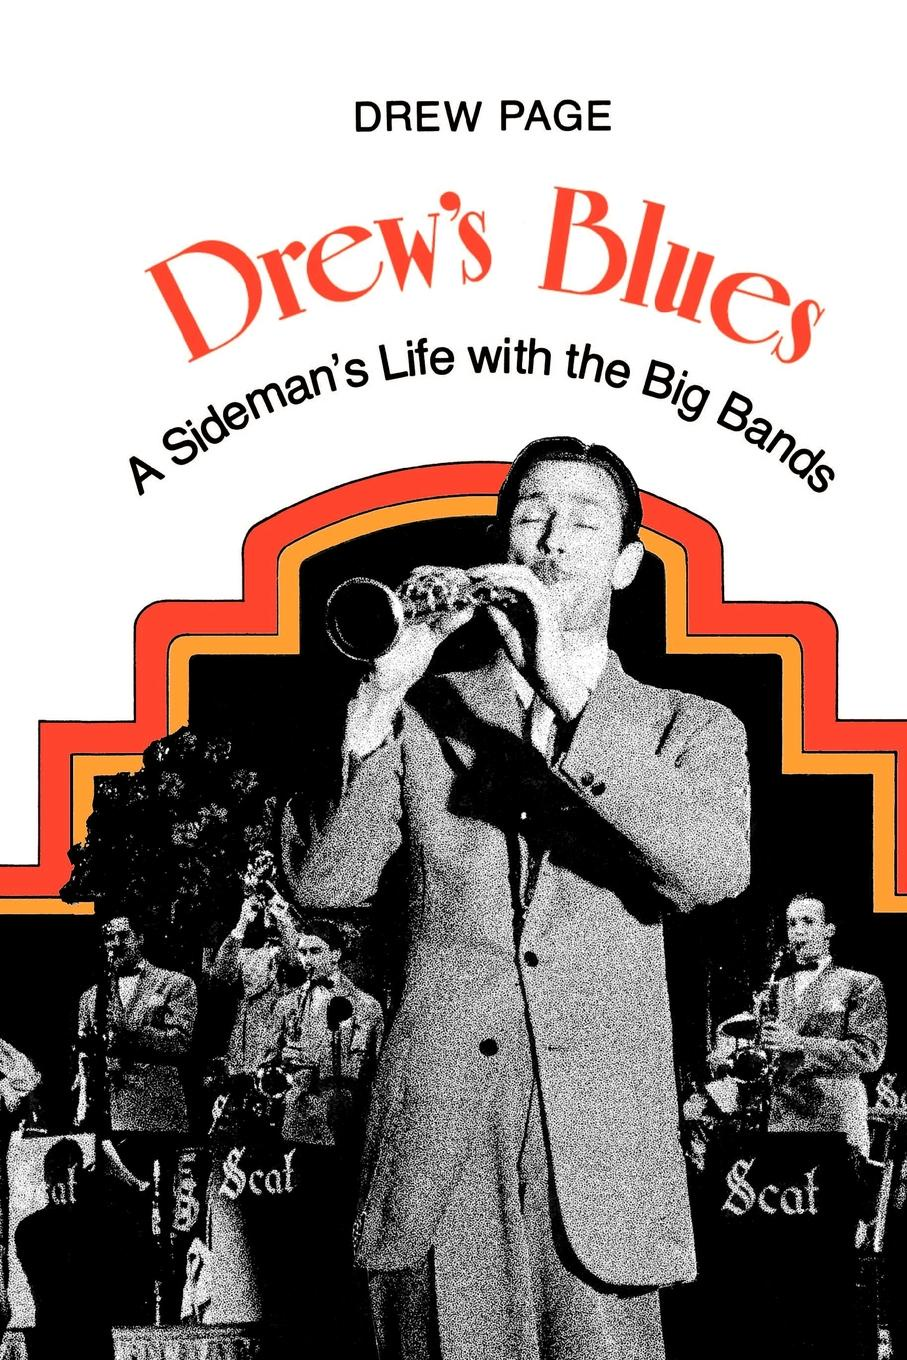 Drew Page Drews Blues. A Sidemans Life with the Big Bands